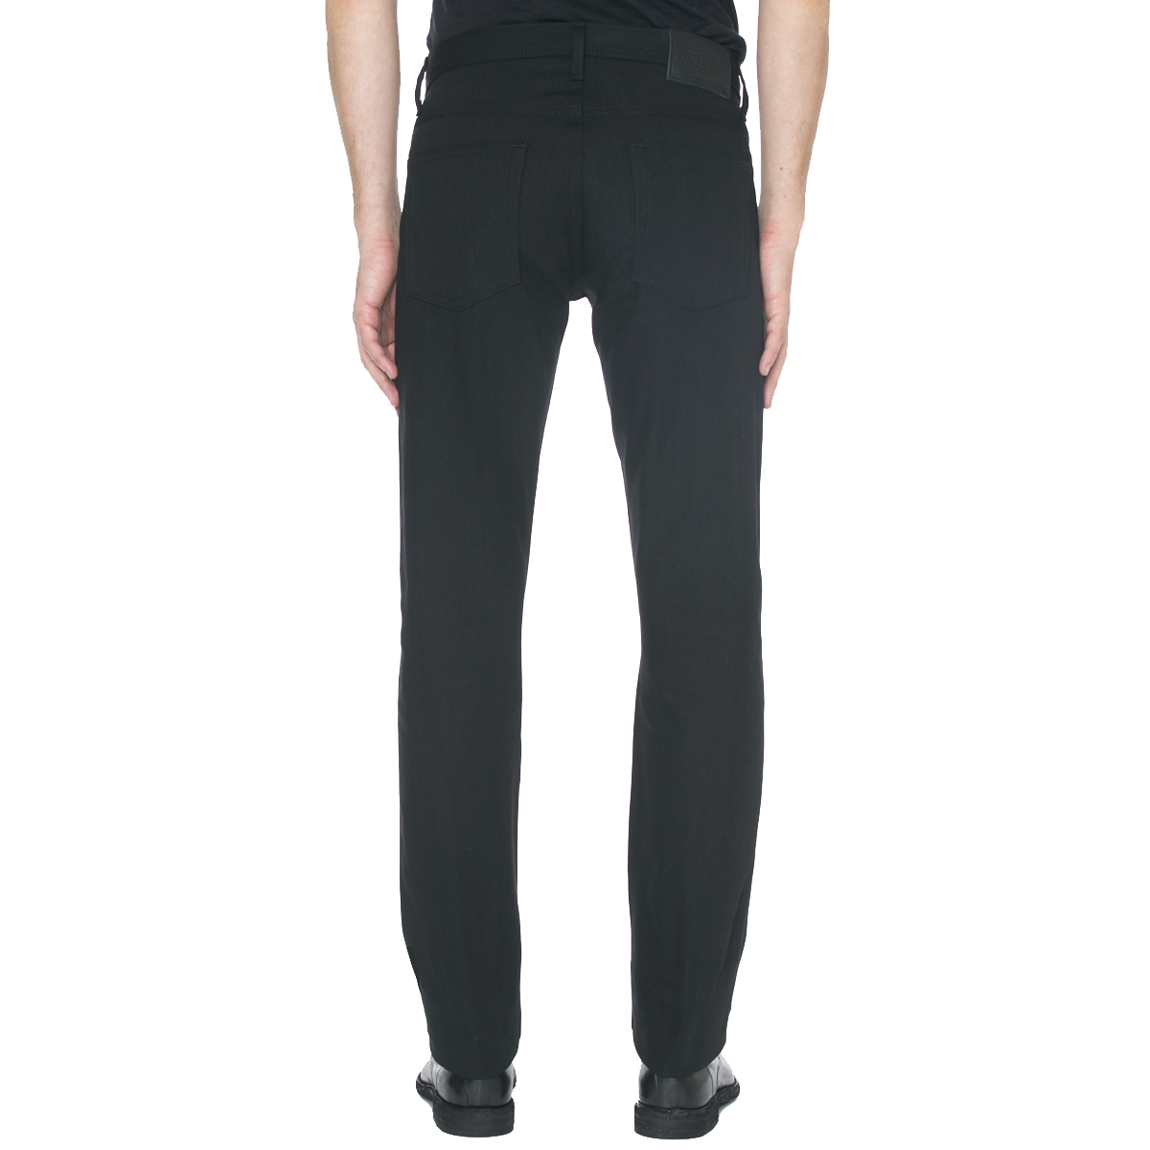 United Stock Dry Goods Narrow Fit Jeans